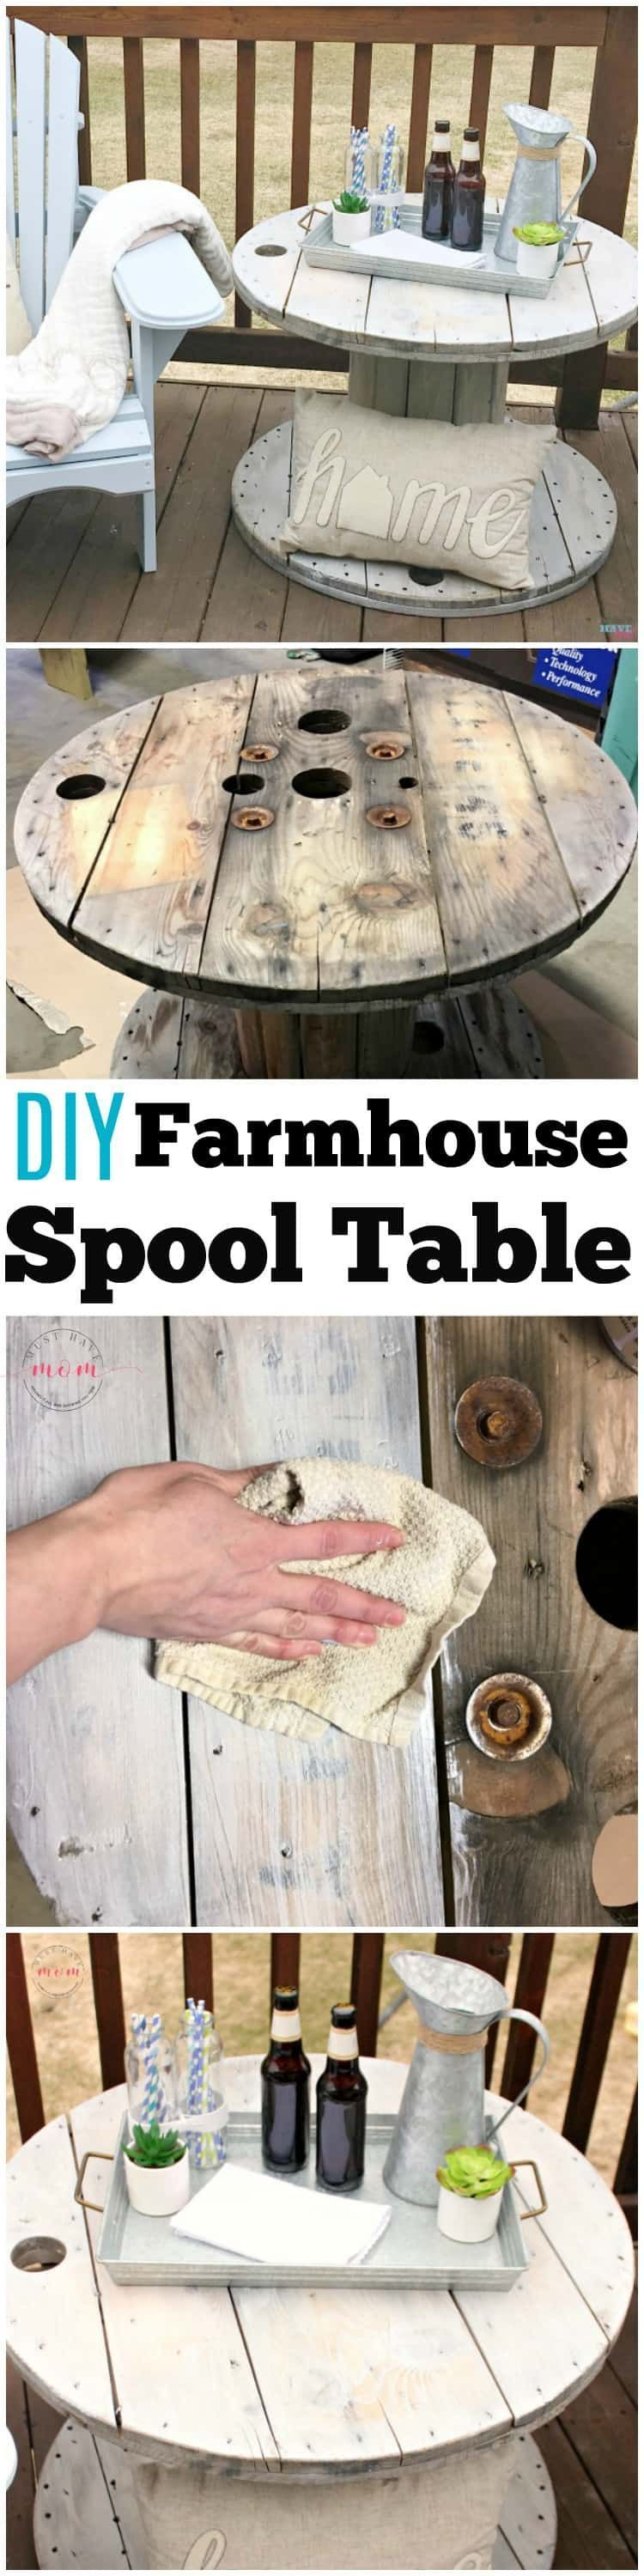 DIY Farmhouse Style Wood Spool Side Table #cablespooltables DIY farmhouse style wood spool table ideas. Tutorial to make a side table from a wood cable spool #cablespooltables DIY Farmhouse Style Wood Spool Side Table #cablespooltables DIY farmhouse style wood spool table ideas. Tutorial to make a side table from a wood cable spool #cablespooltables